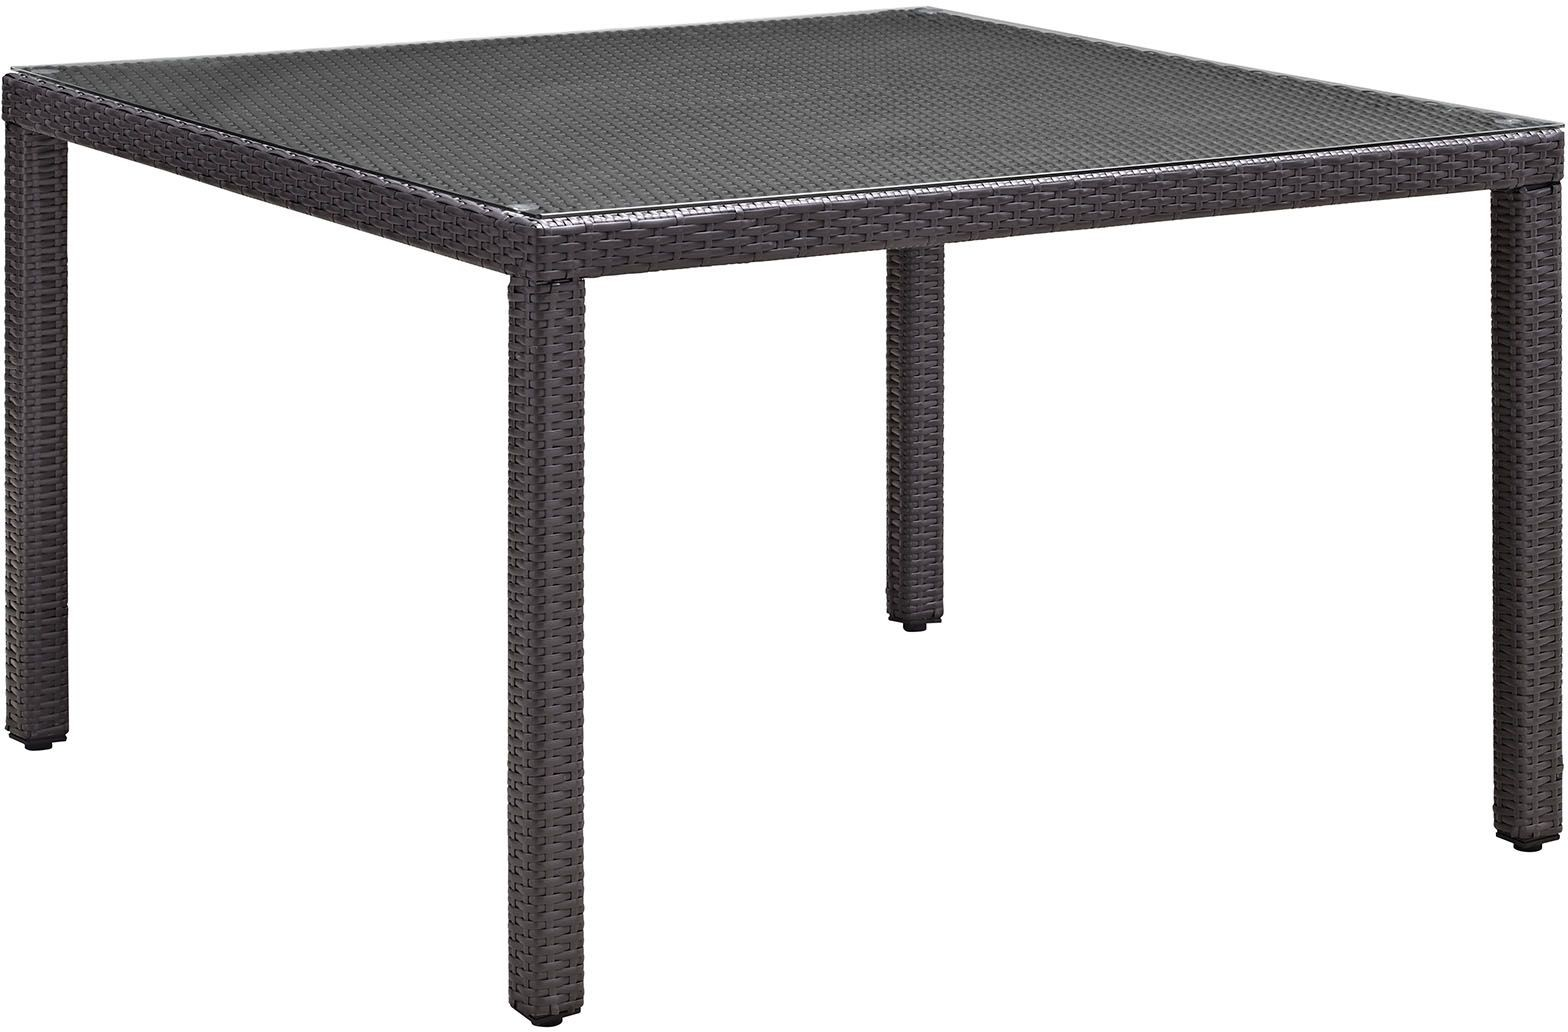 Convene espresso 47 square outdoor patio glass top dining for Glass top outdoor dining table